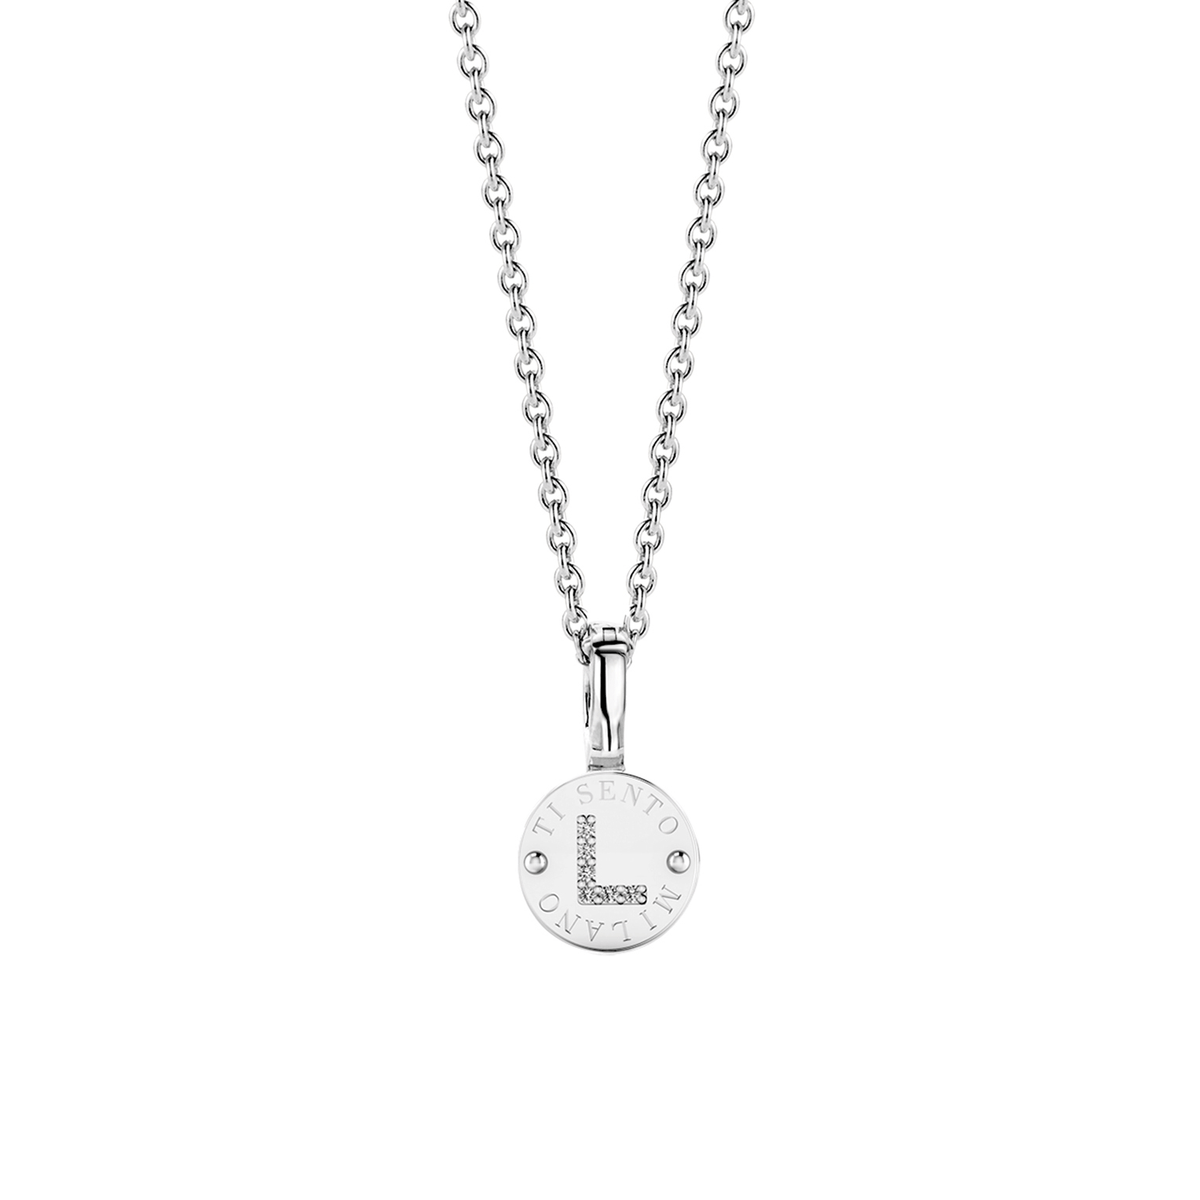 TI SENTO - Milano Necklace 3858LL